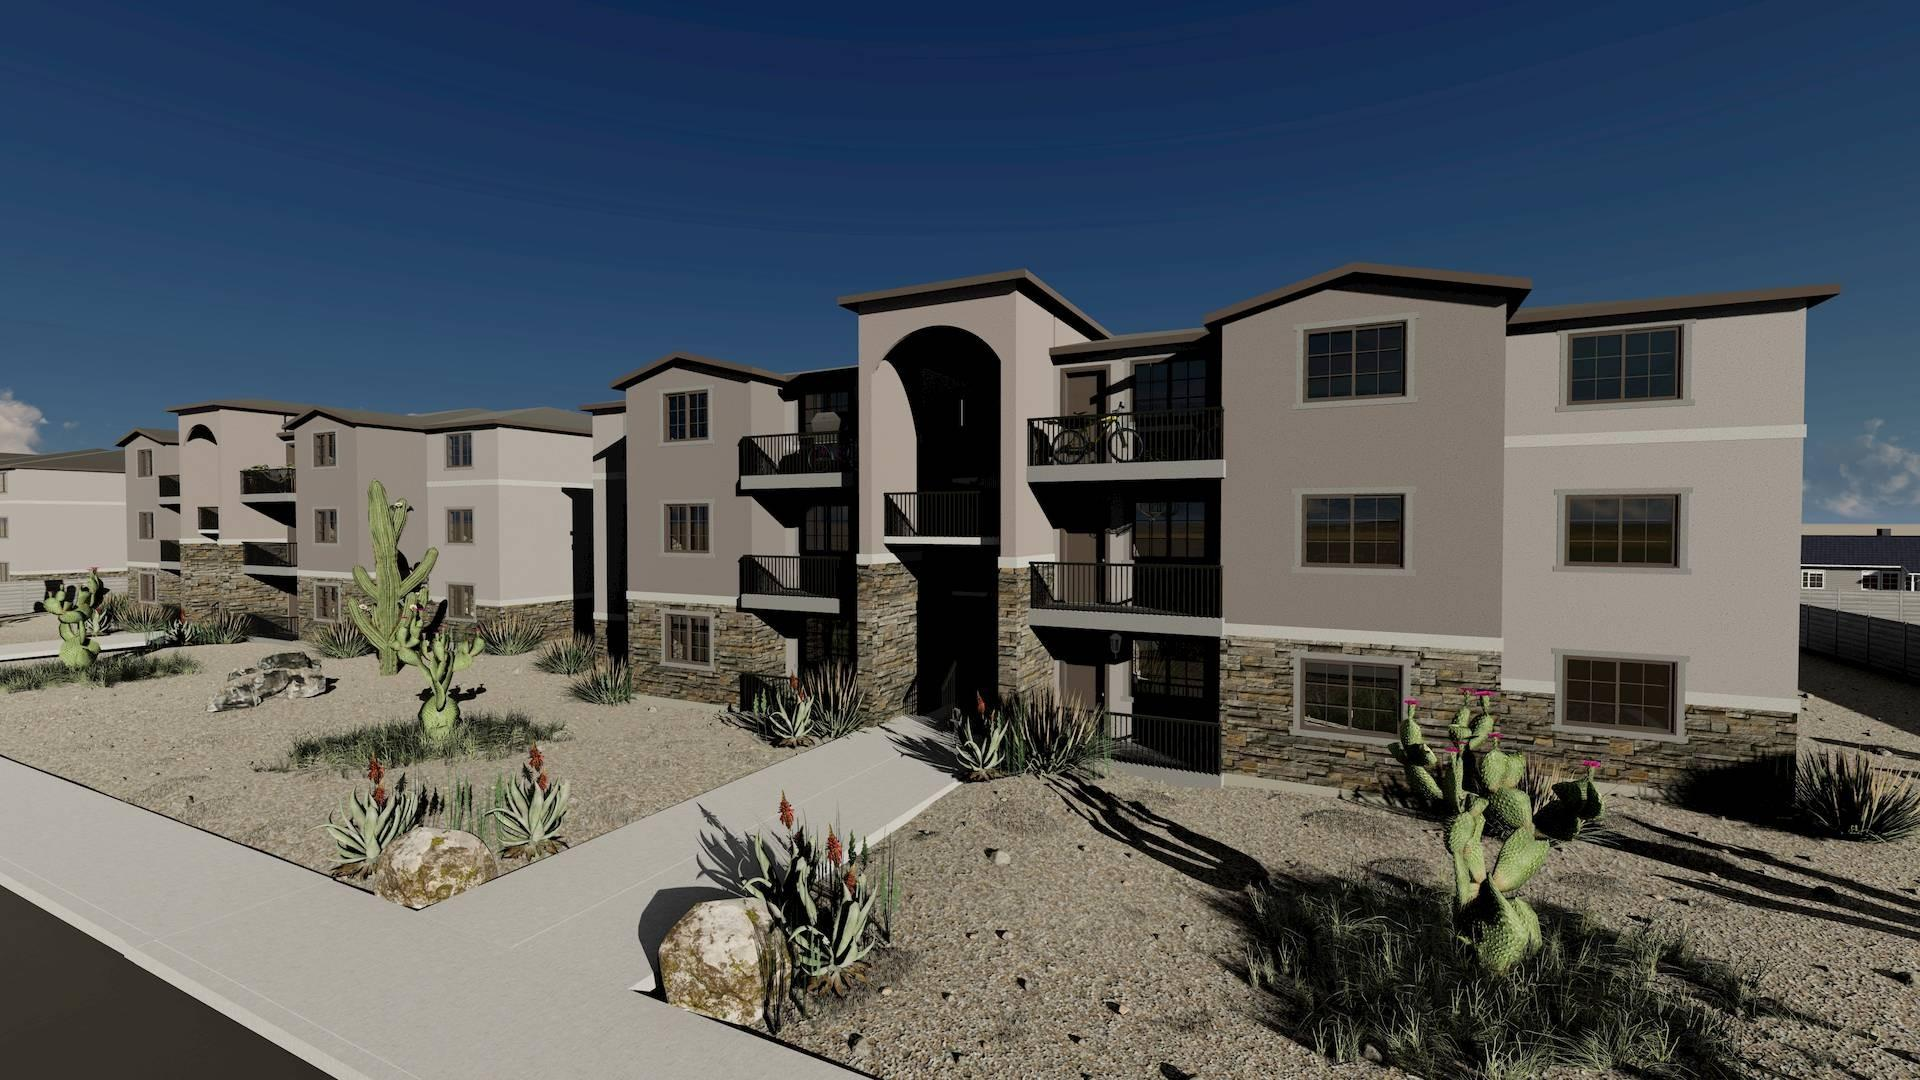 Village on Greenway is a 2020 multifamily development located in the Phoenix valley.